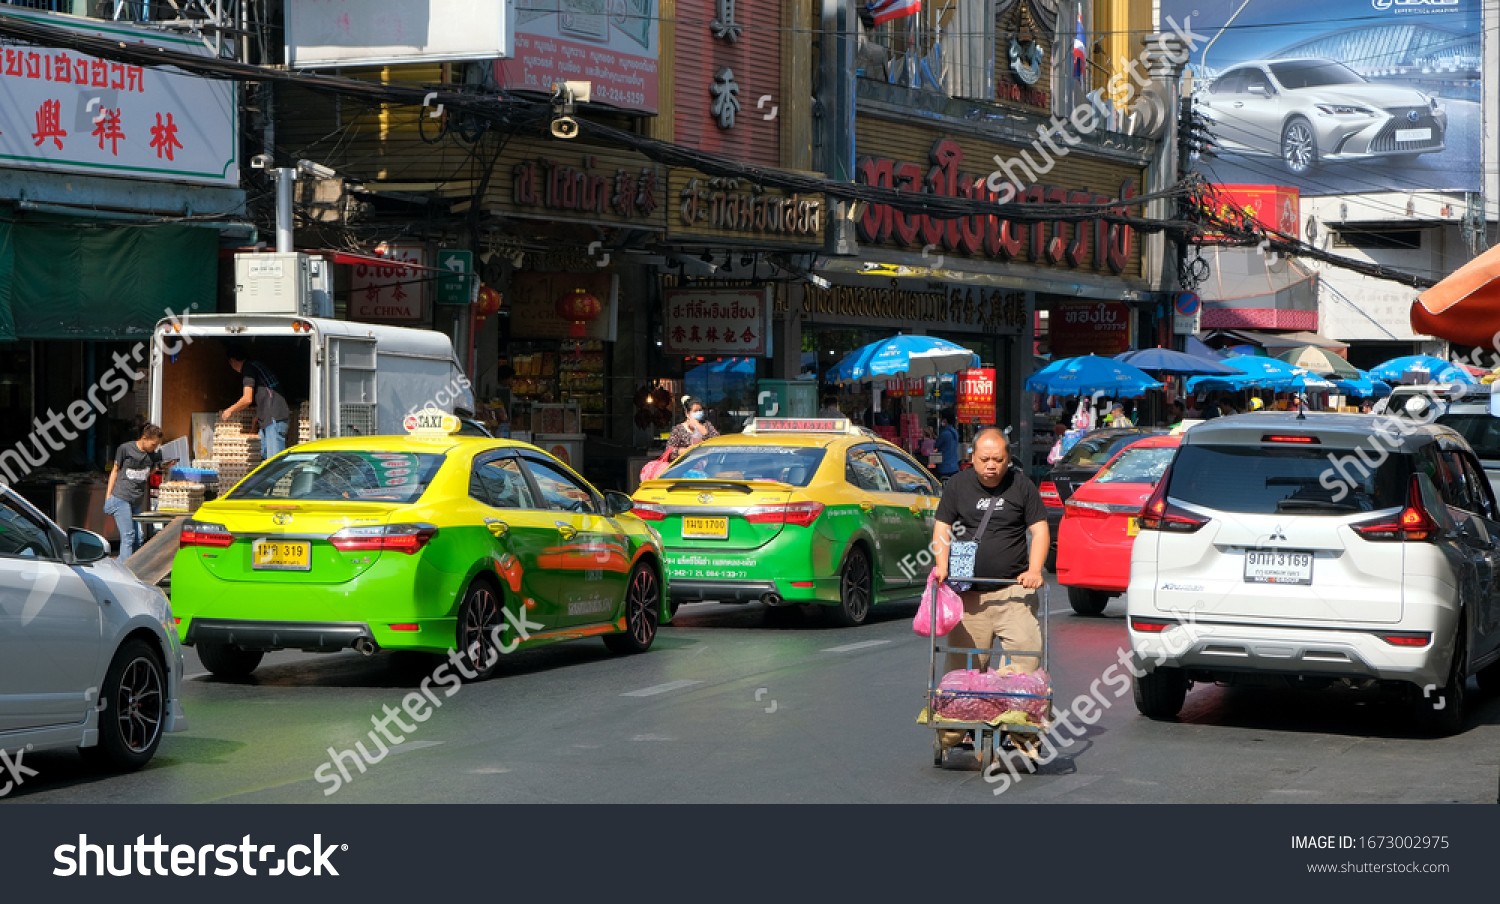 BANGKOK, THAILAND - MARCH 6, 2020: An unidentified man pushes a trolley while crossing a street amidst traffic on March 6, 2020 in Thai capital Bangkok